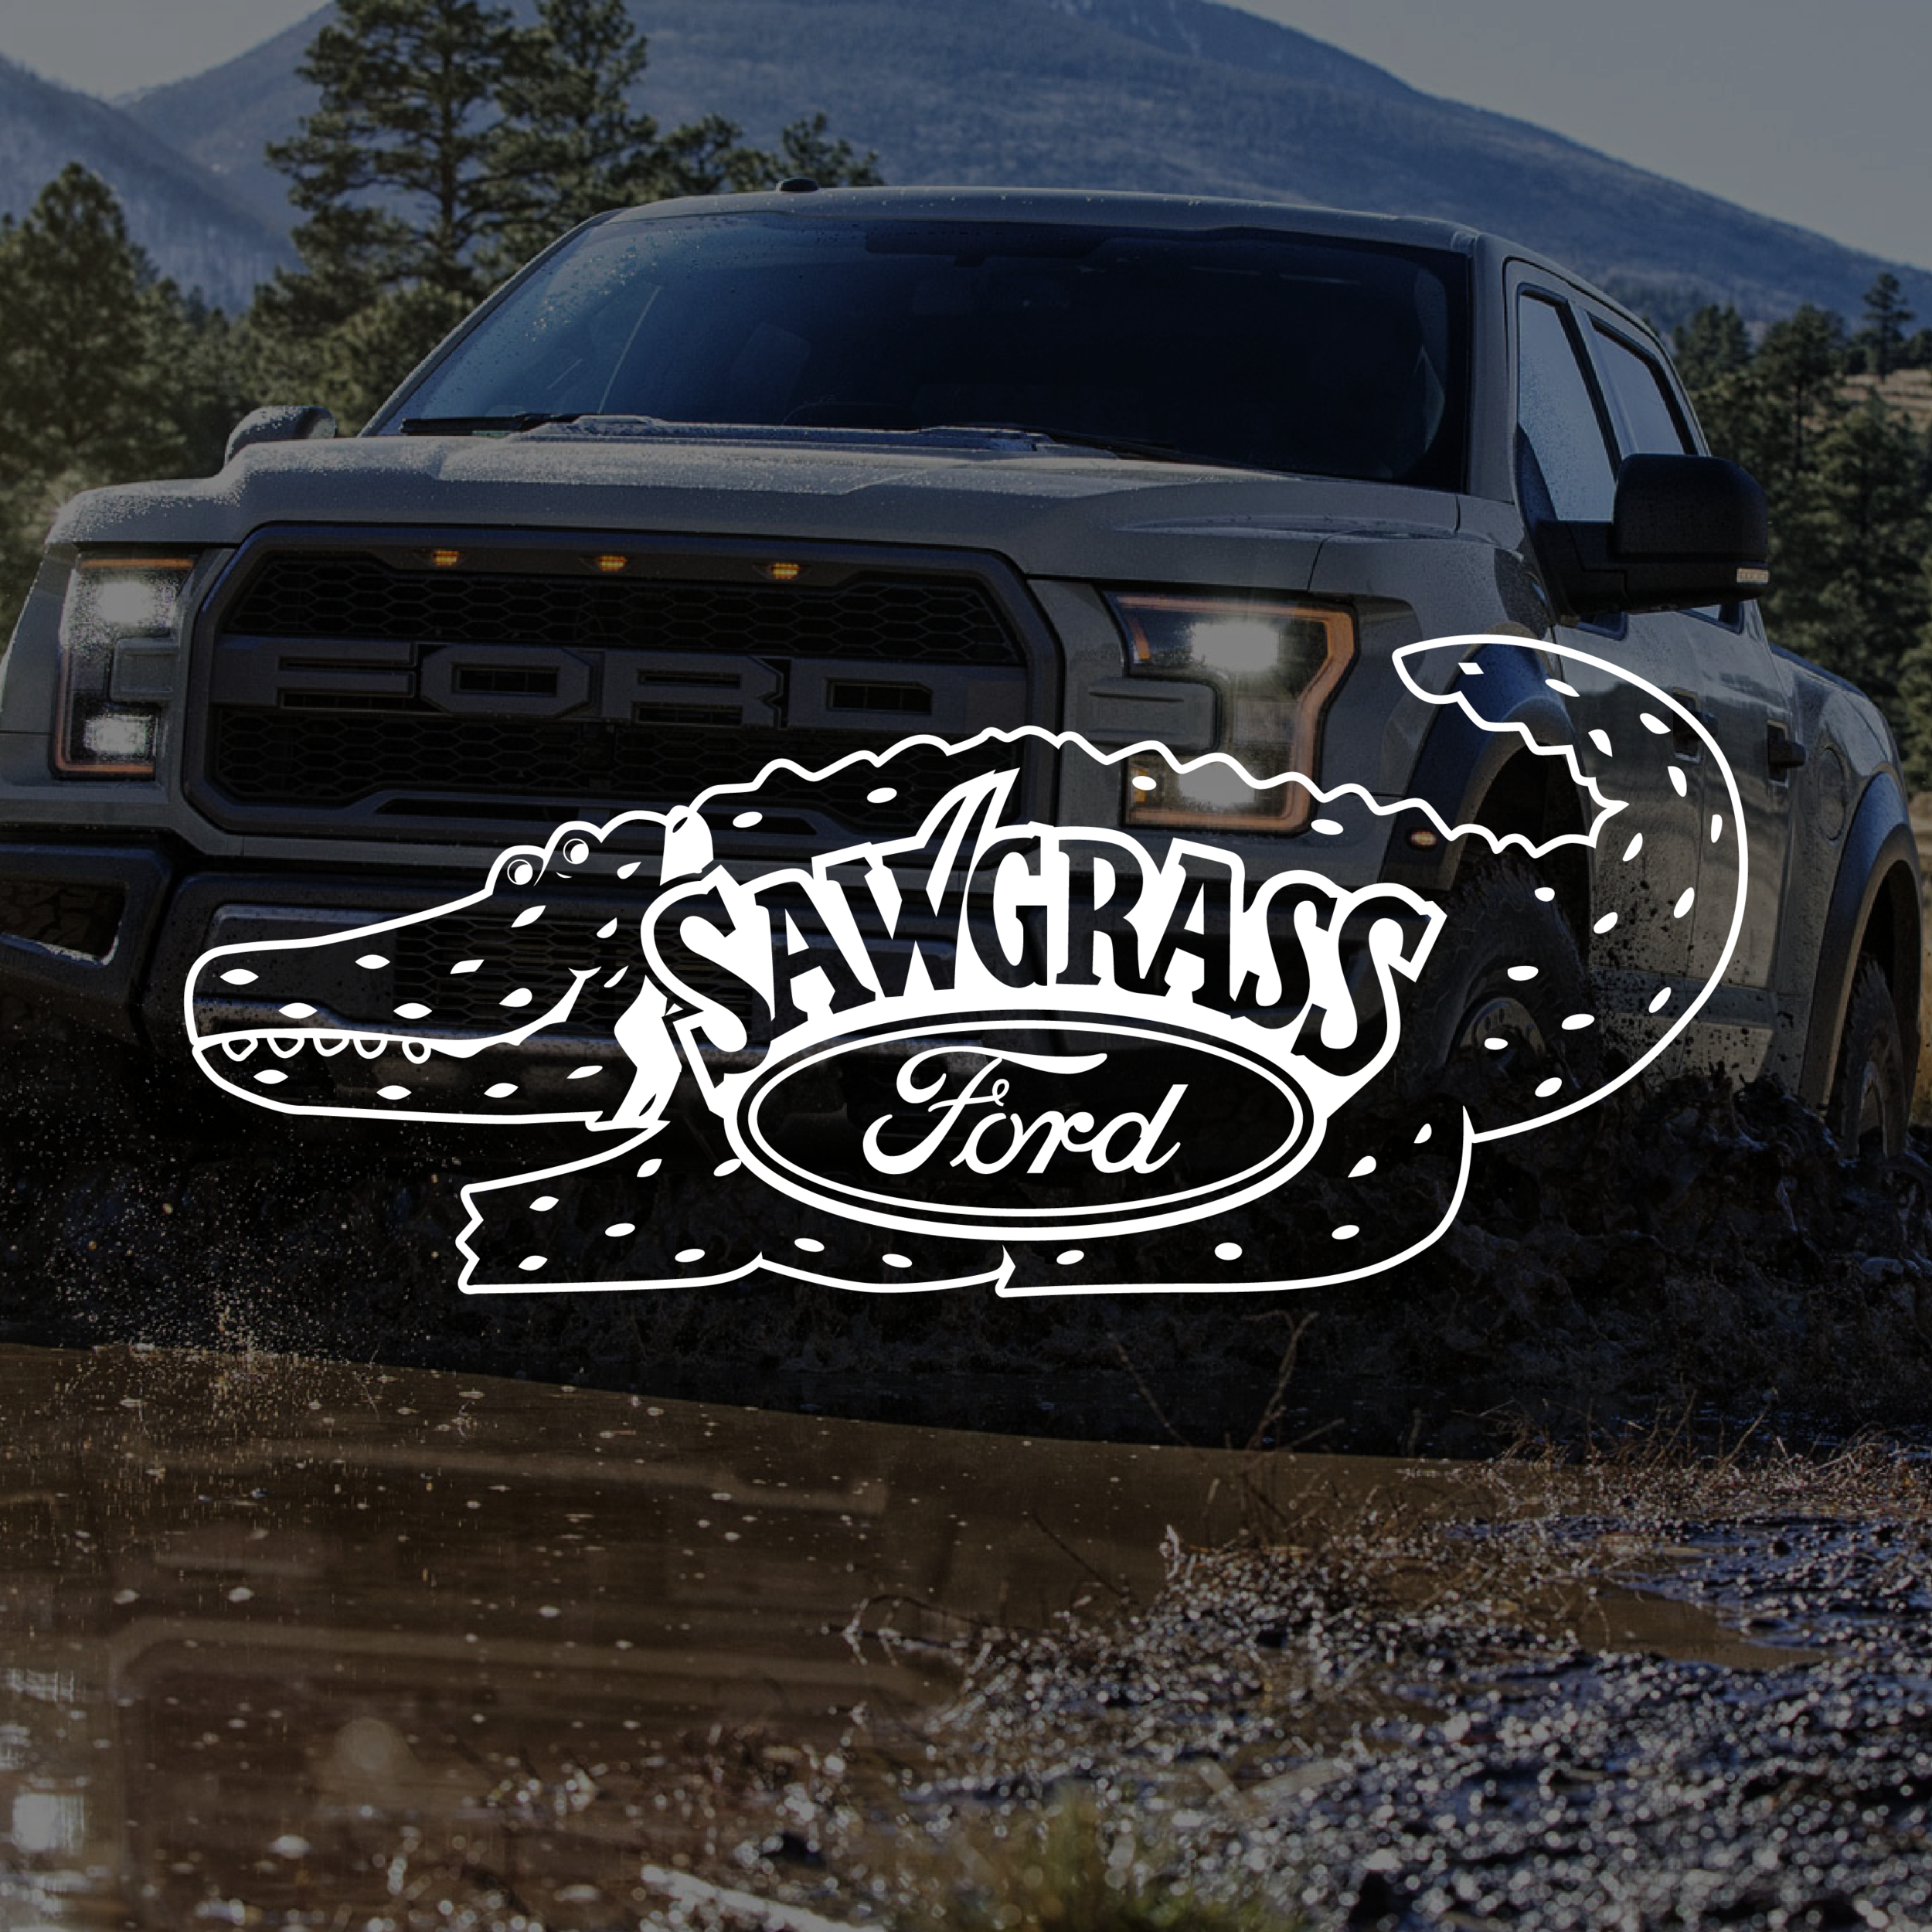 Sawgrass Ford-01.png